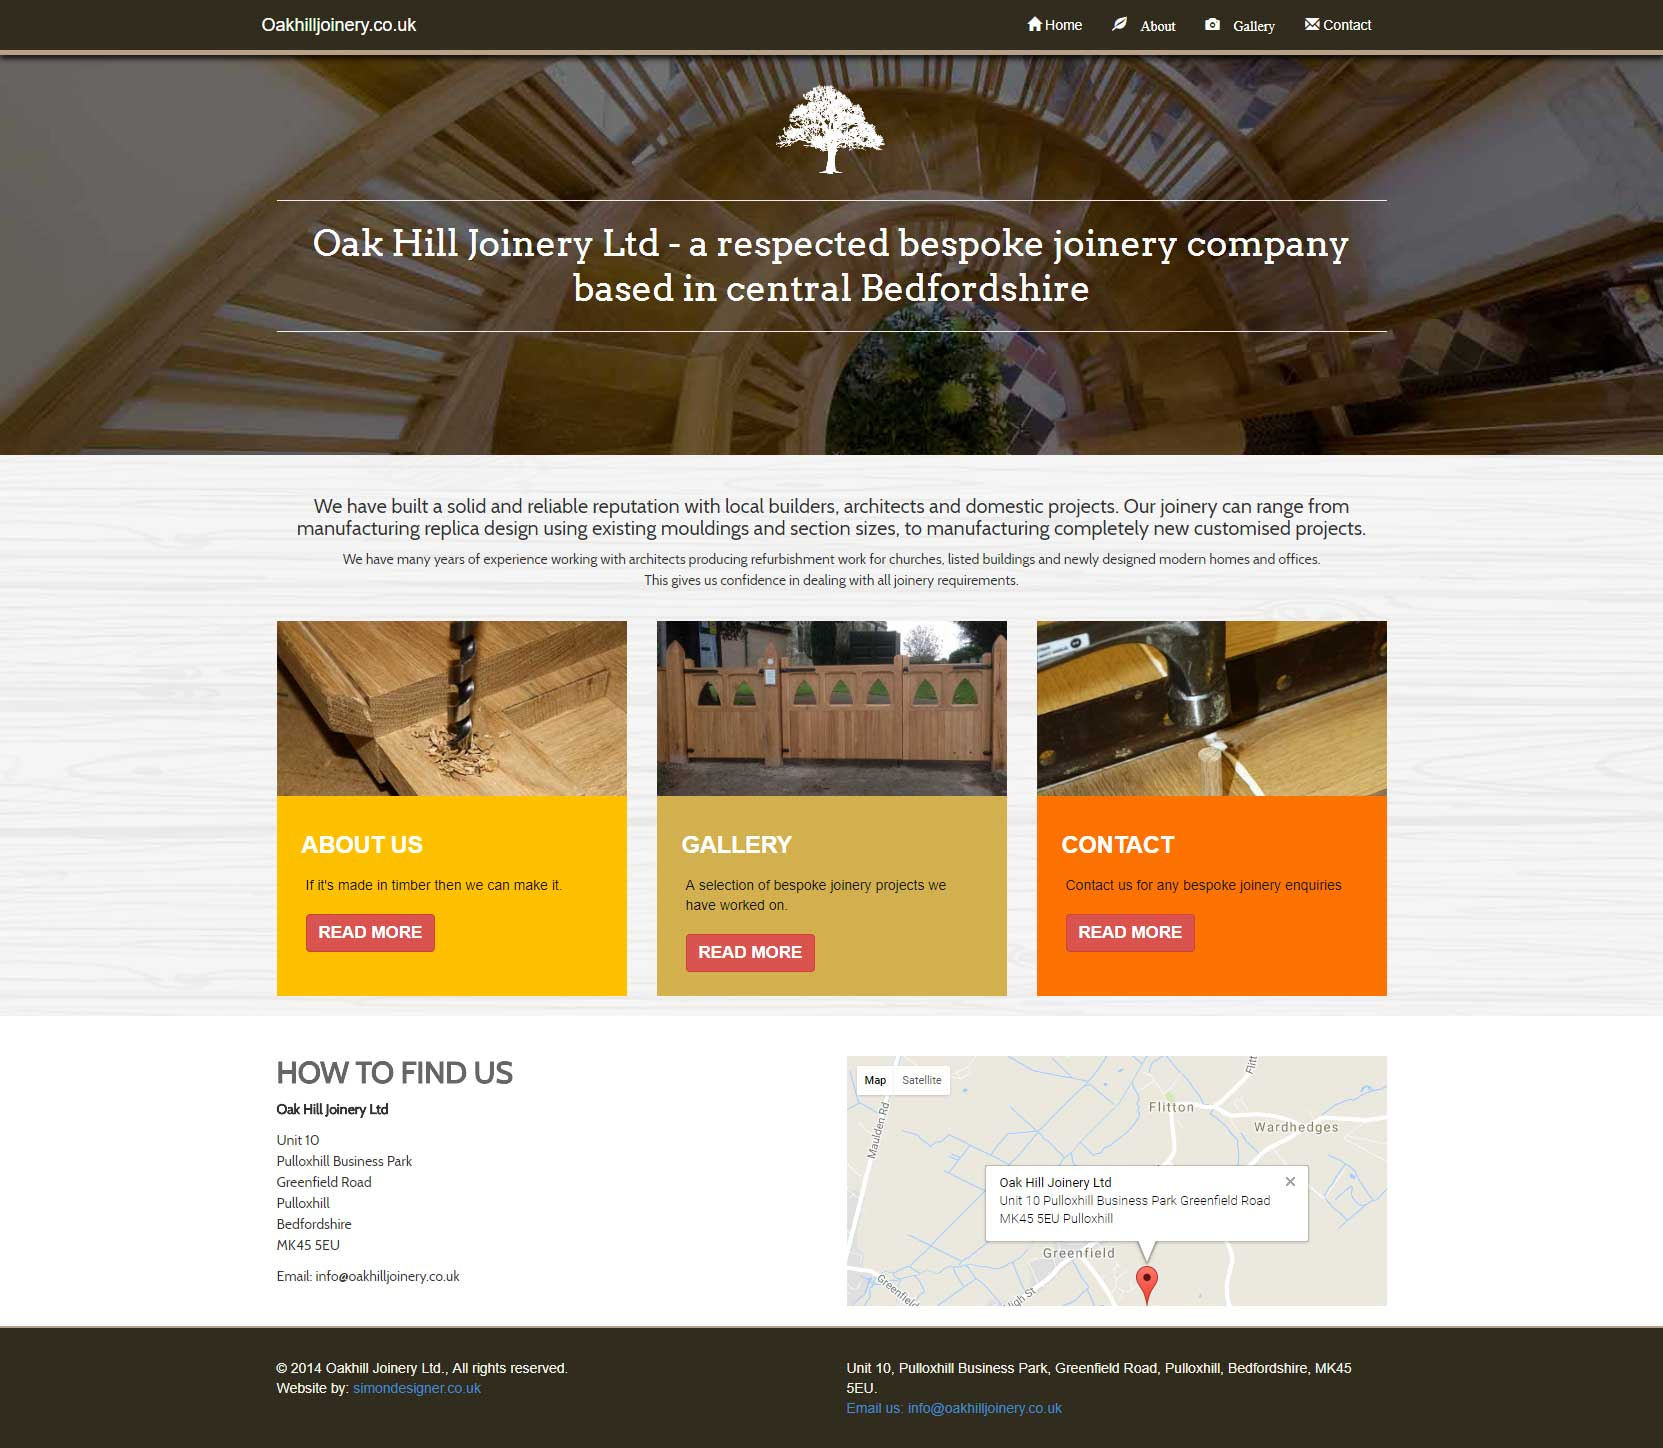 Website design - Oakhill Joinery